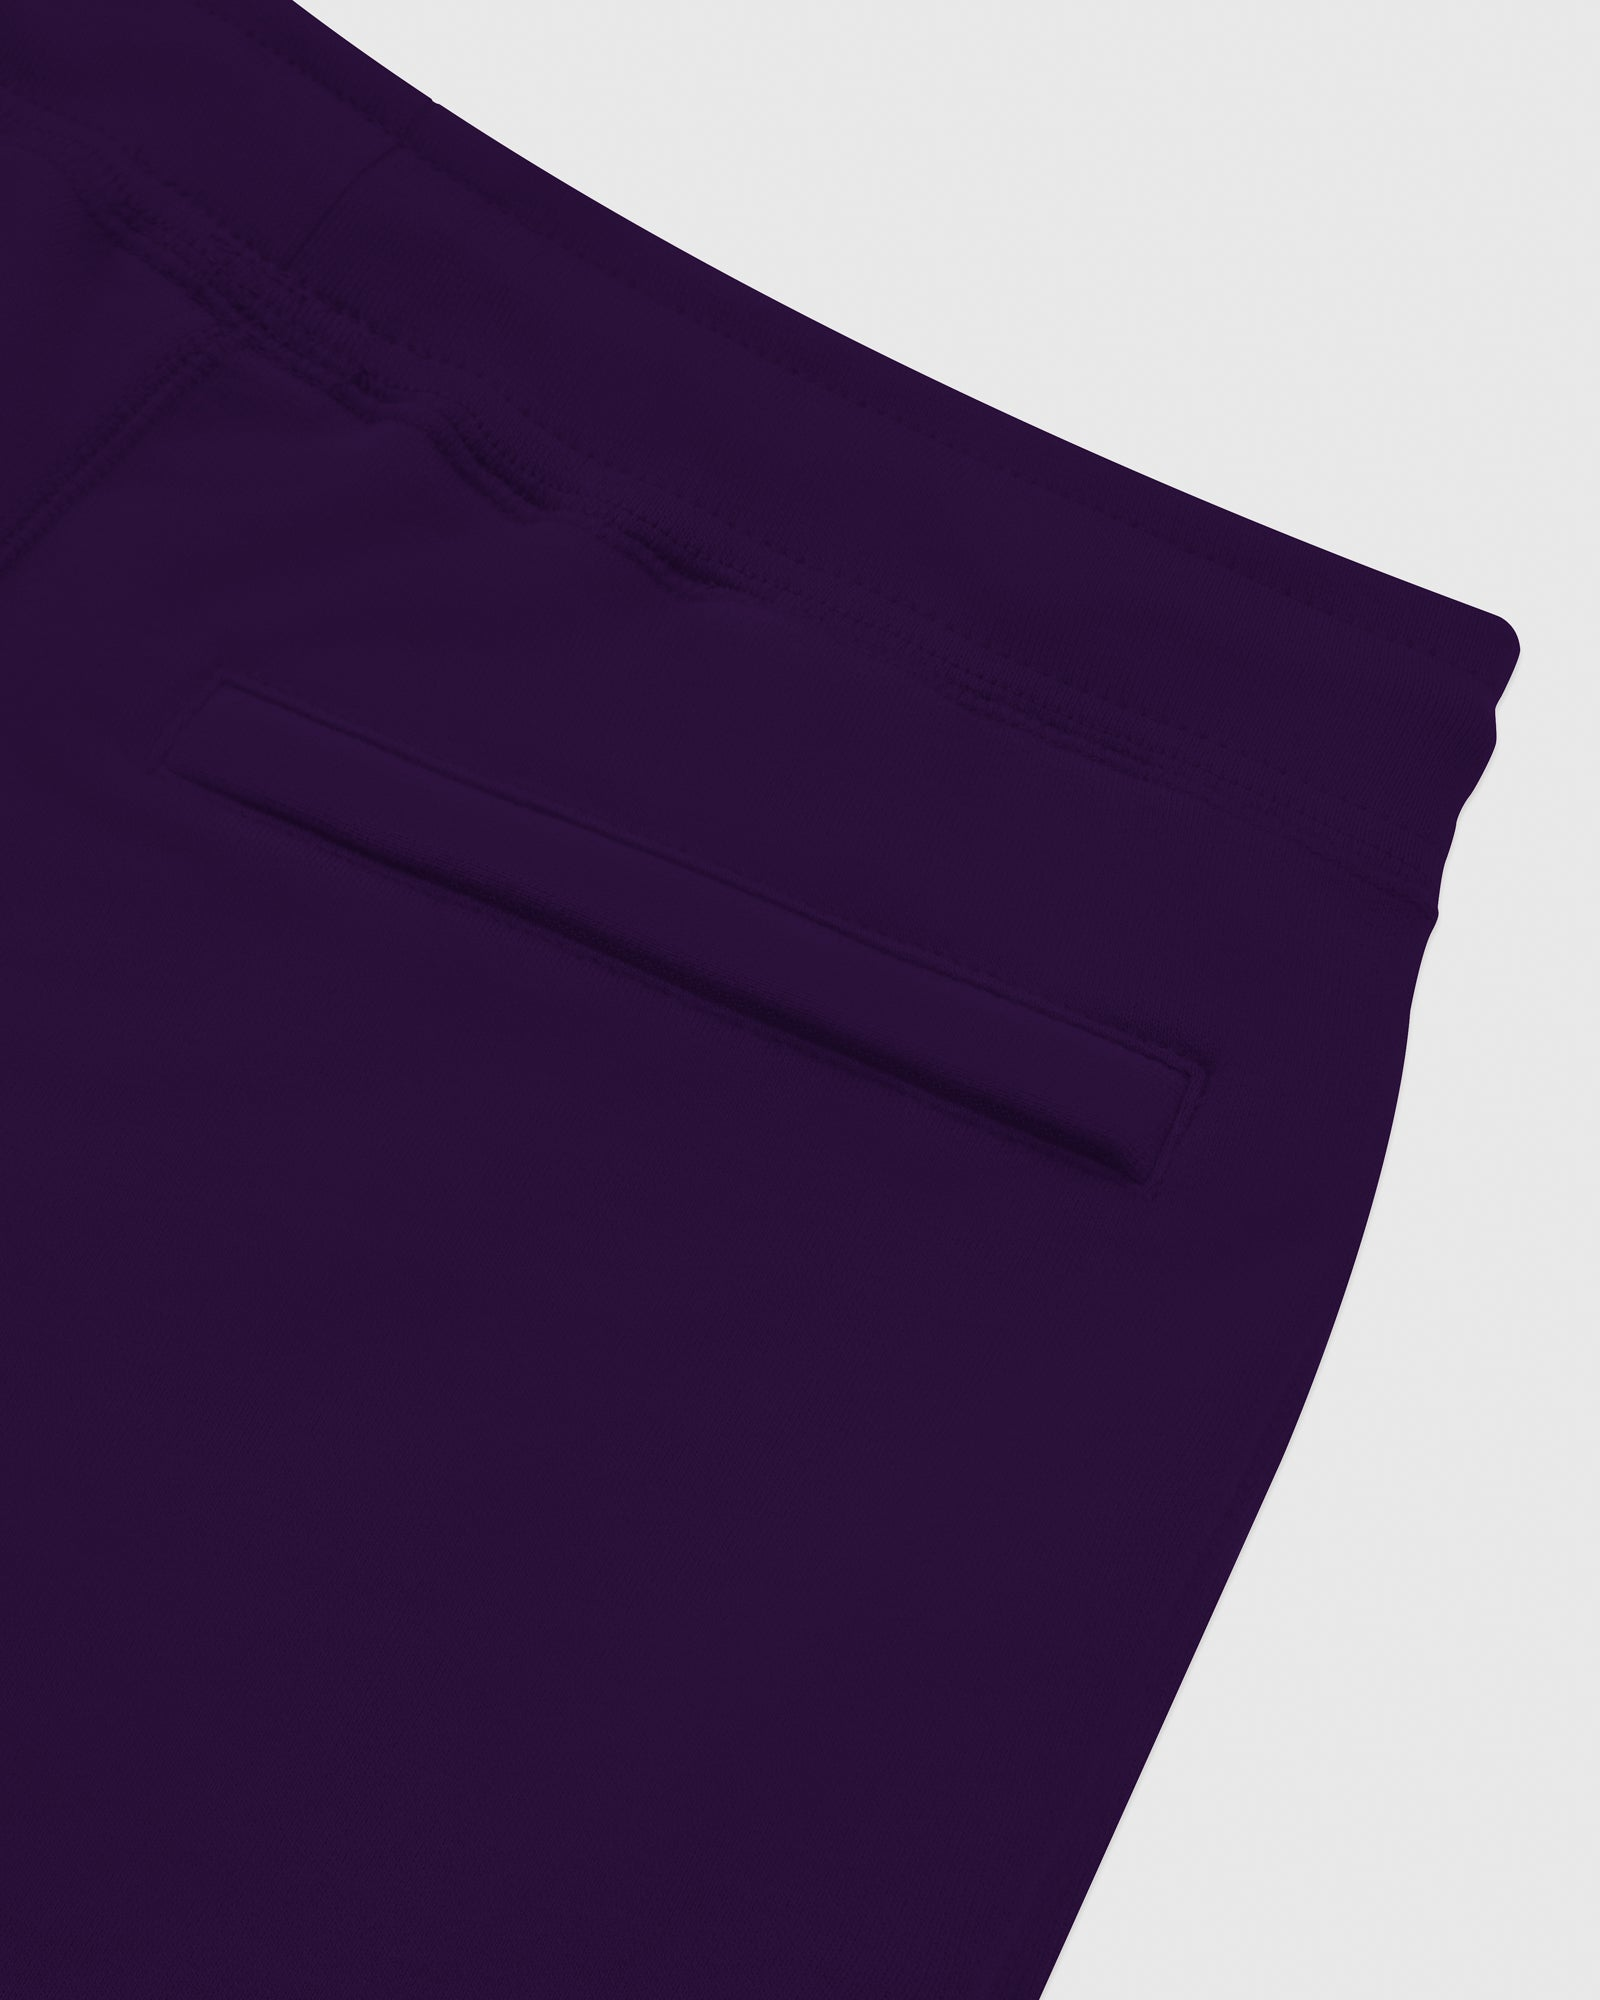 MID-WEIGHT FRENCH TERRY SWEATPANT - PURPLE IMAGE #6